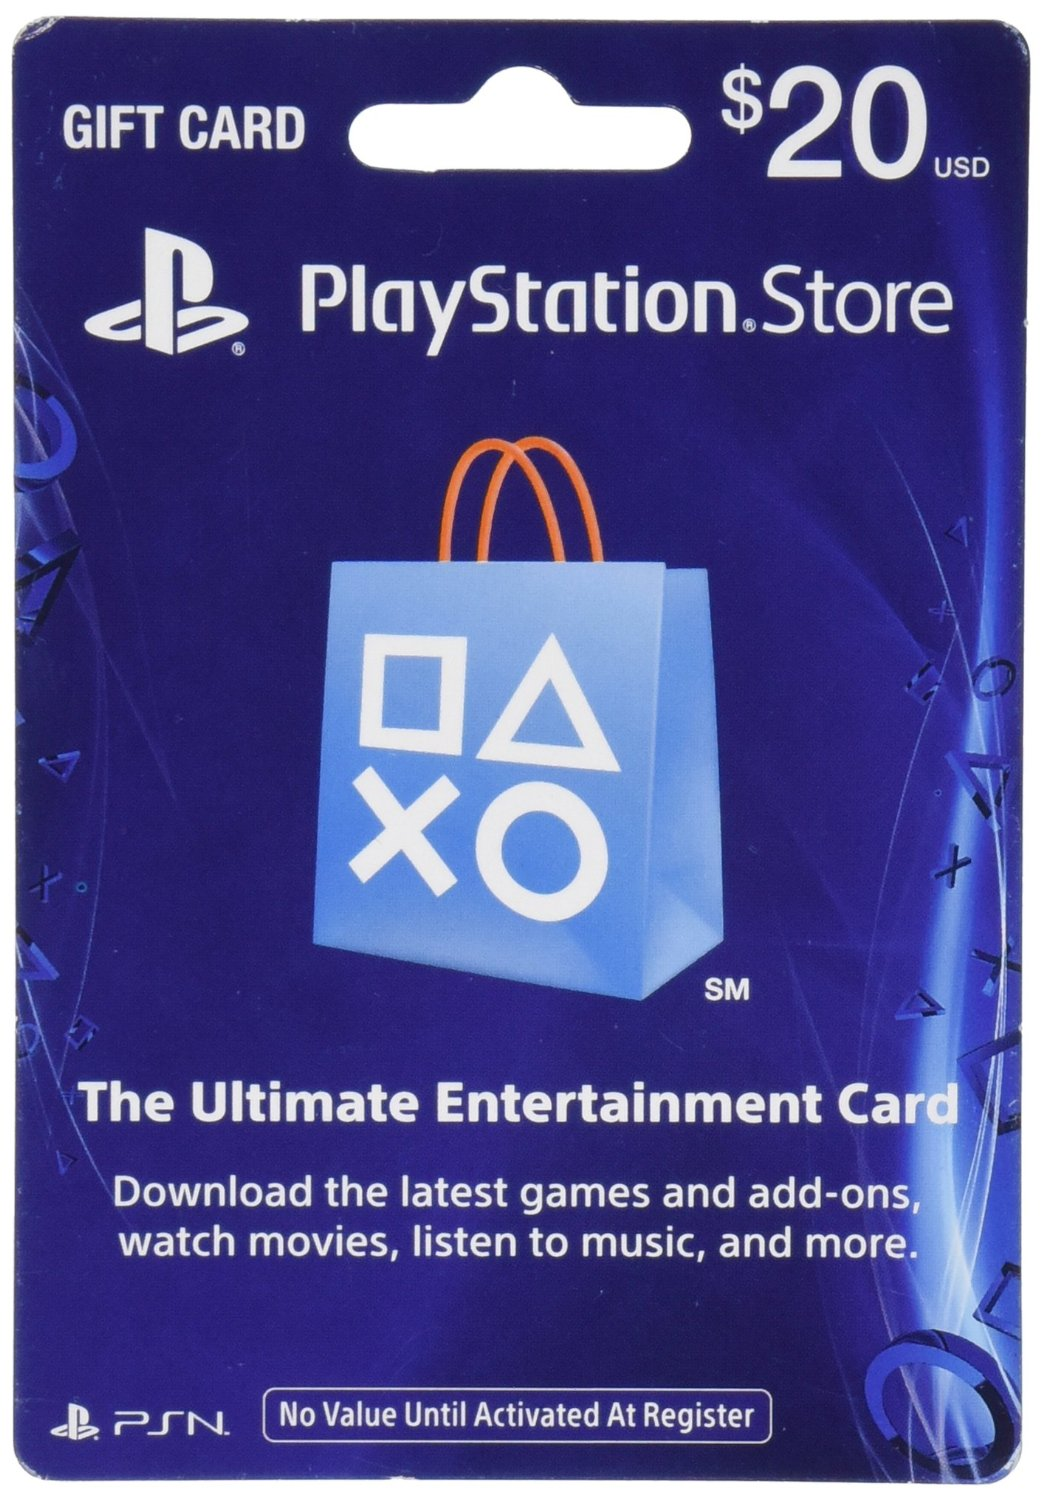 I☮ PSN $20 Playstation Network (USA)